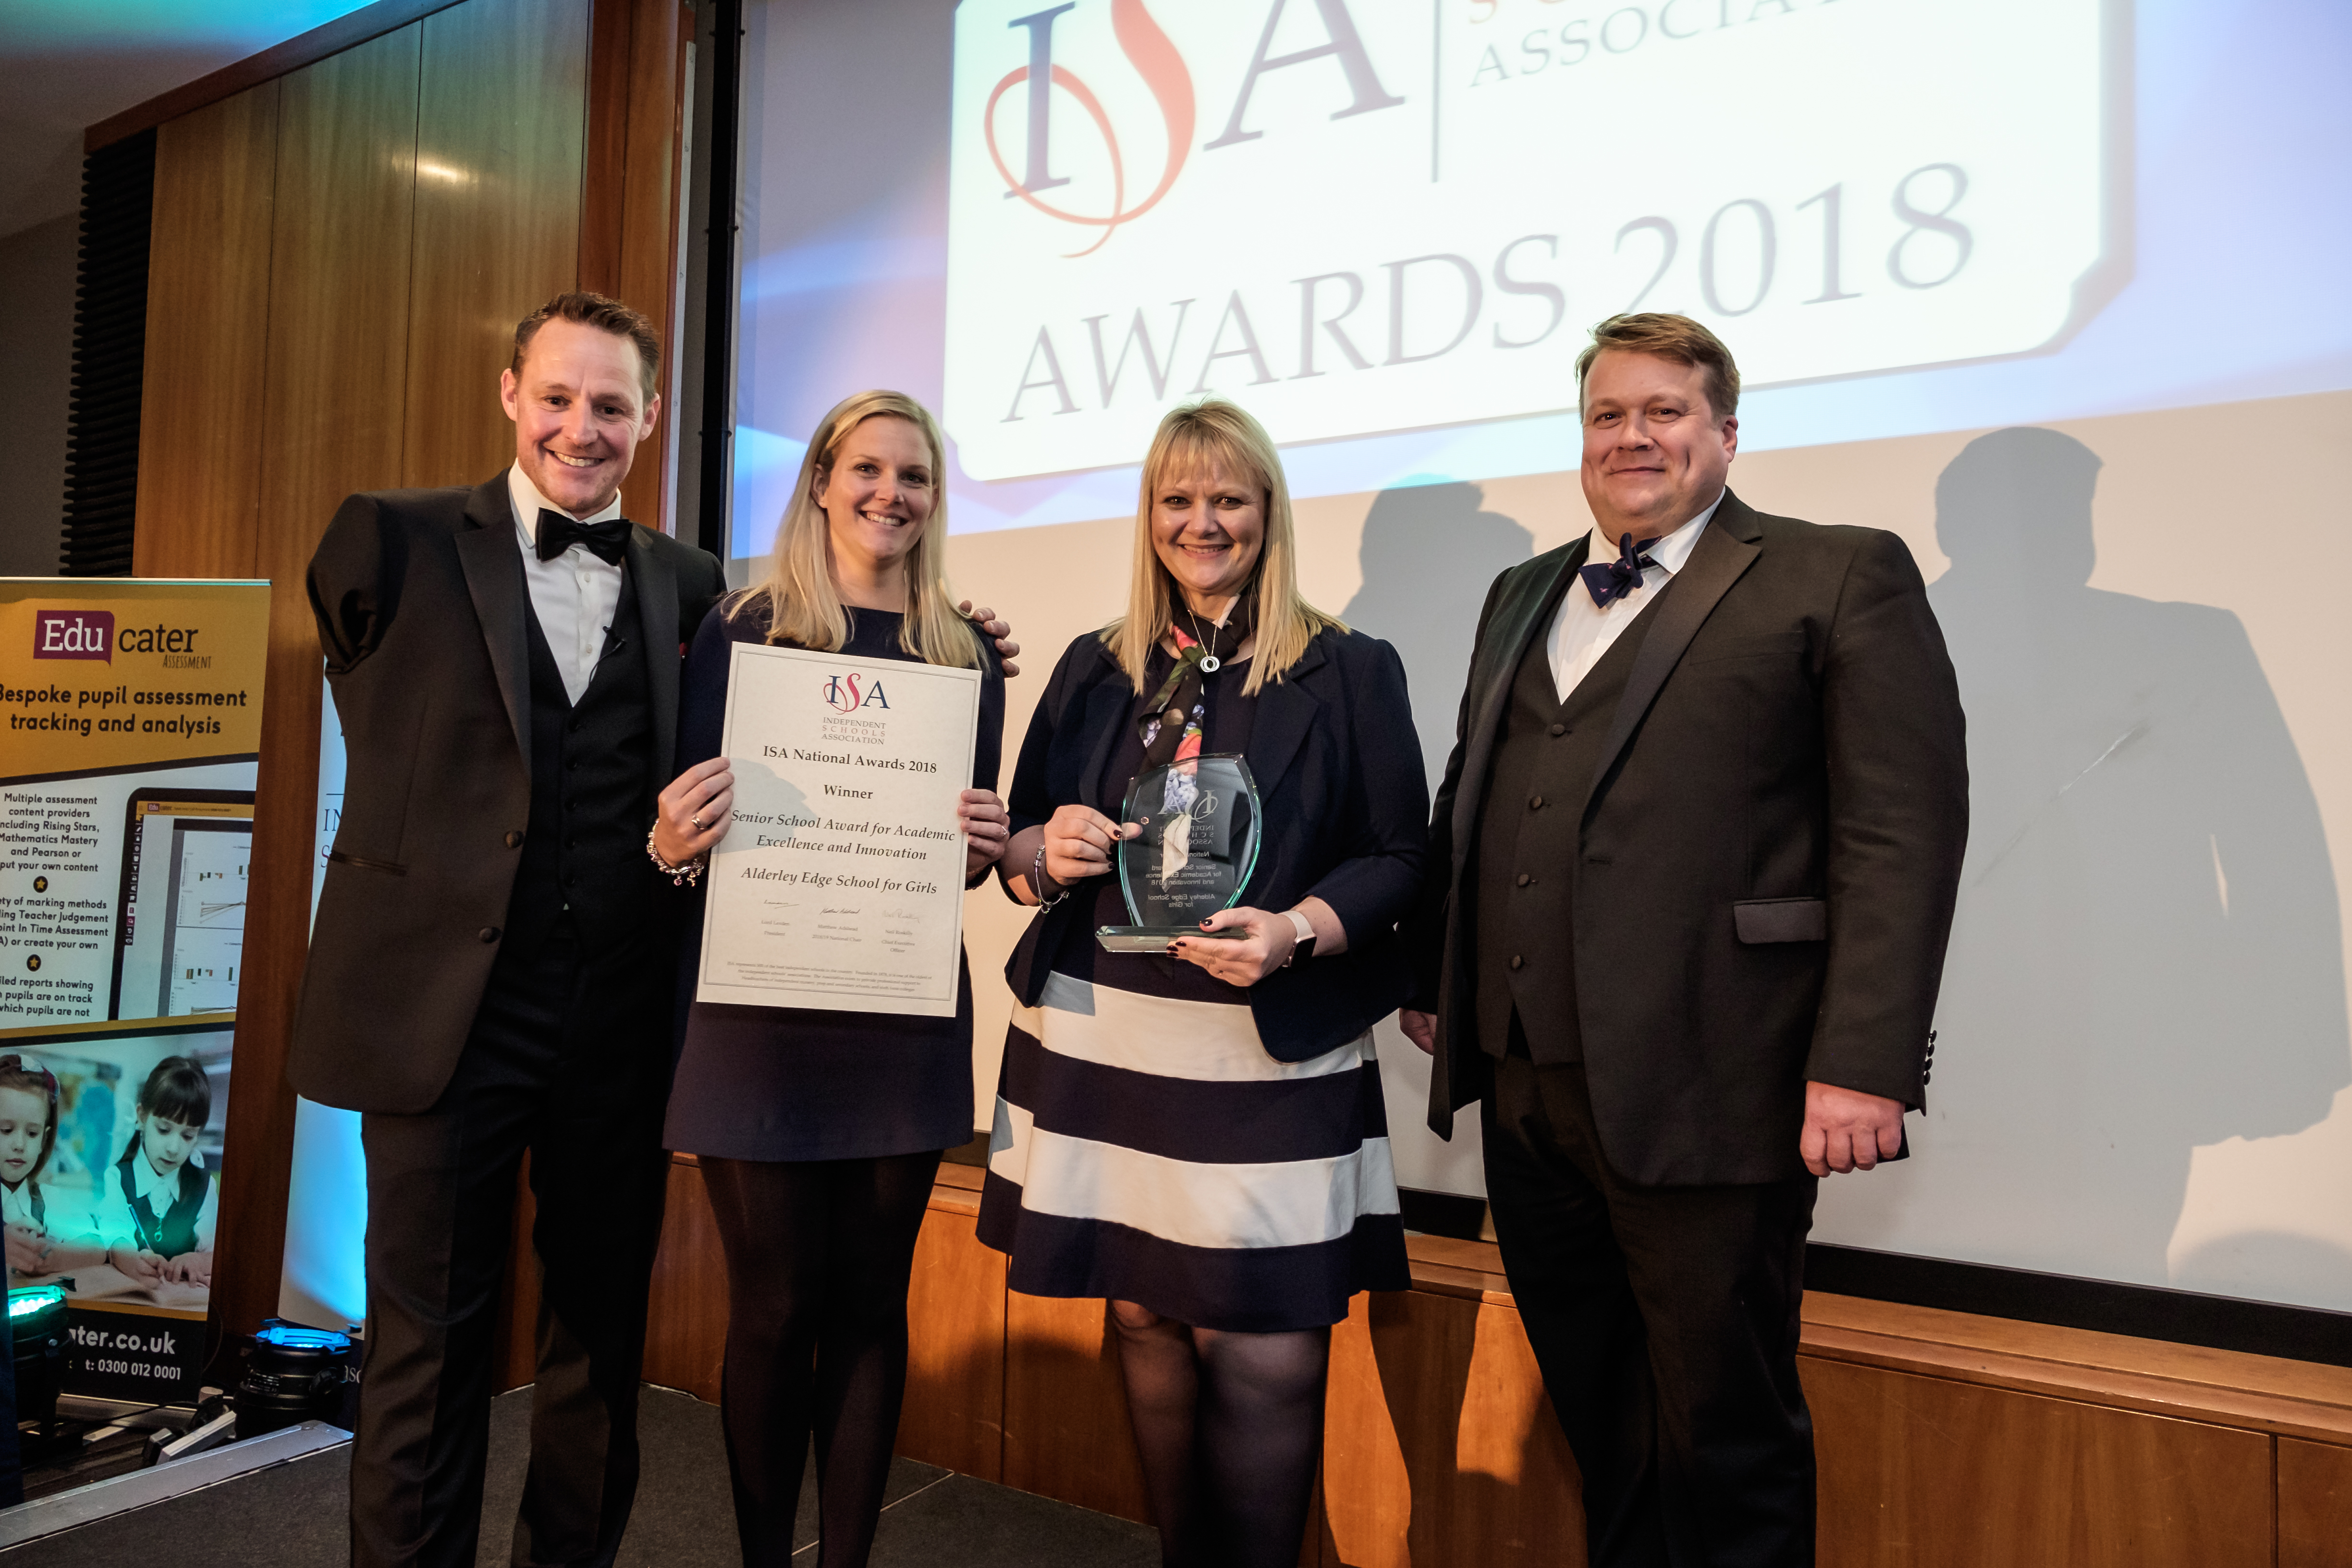 Headmistress, Helen Jeys and Debbie Dawson, director of Development receive the ISA National Award for academic excellence and innovation (002)